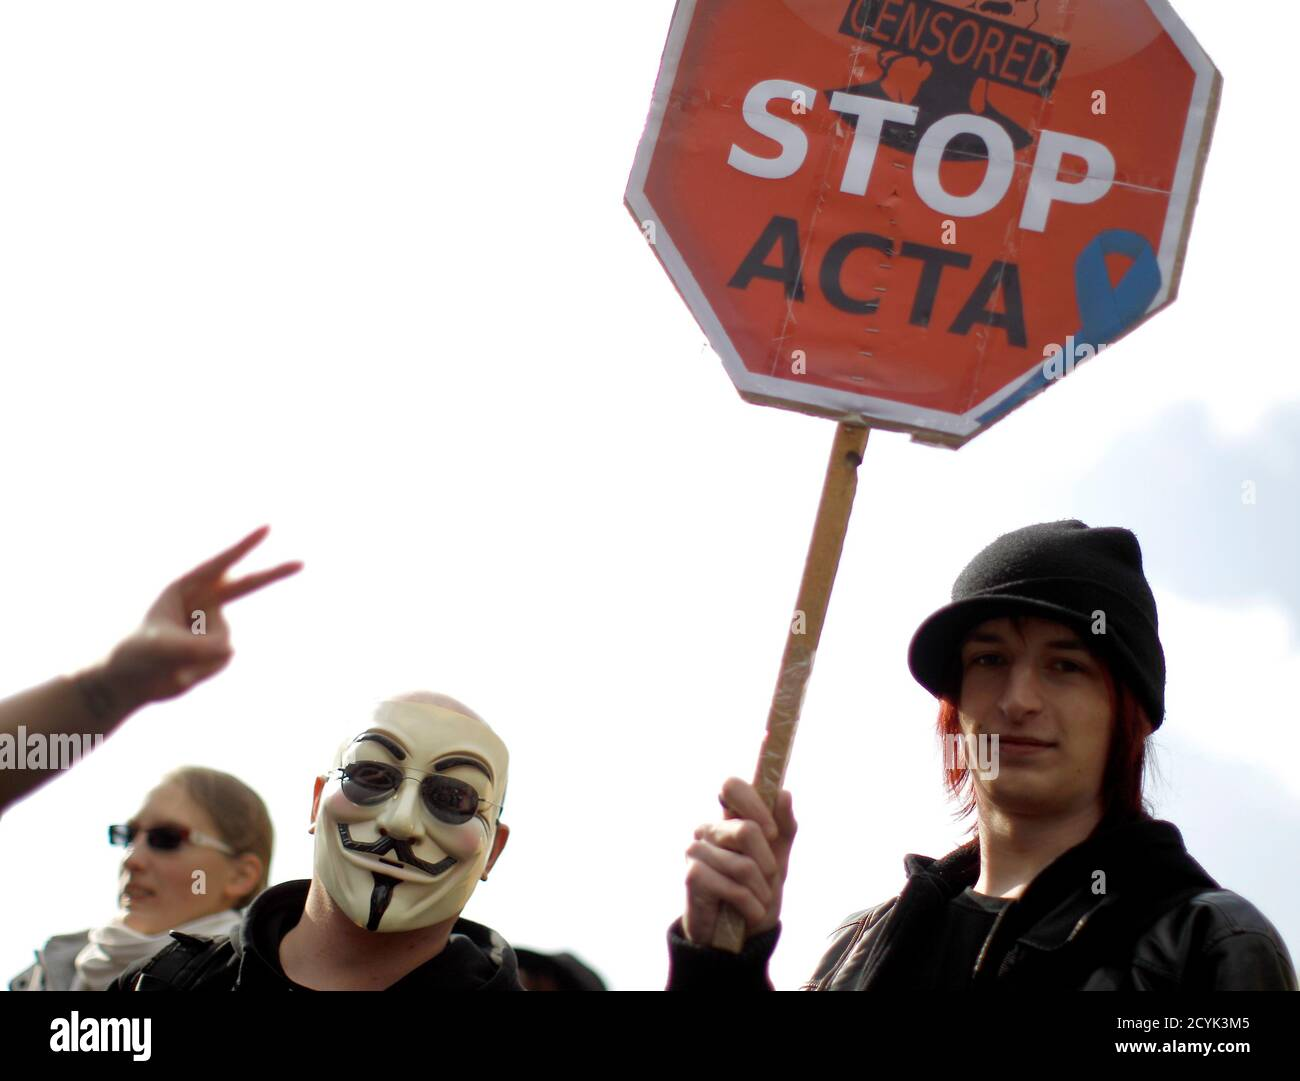 Protesters take part in a demonstration against ACTA (Anti-Counterfeiting Trade Agreement) in Vienna, February 25, 2012.  Protesters fear that ACTA, which aims to cut trademark theft and other online piracy, will curtail freedom of expression, curb their freedom to download movies and music for free and encourage Internet surveillance.   REUTERS/Lisi Niesner (AUSTRIA - Tags: POLITICS CIVIL UNREST) Foto de stock